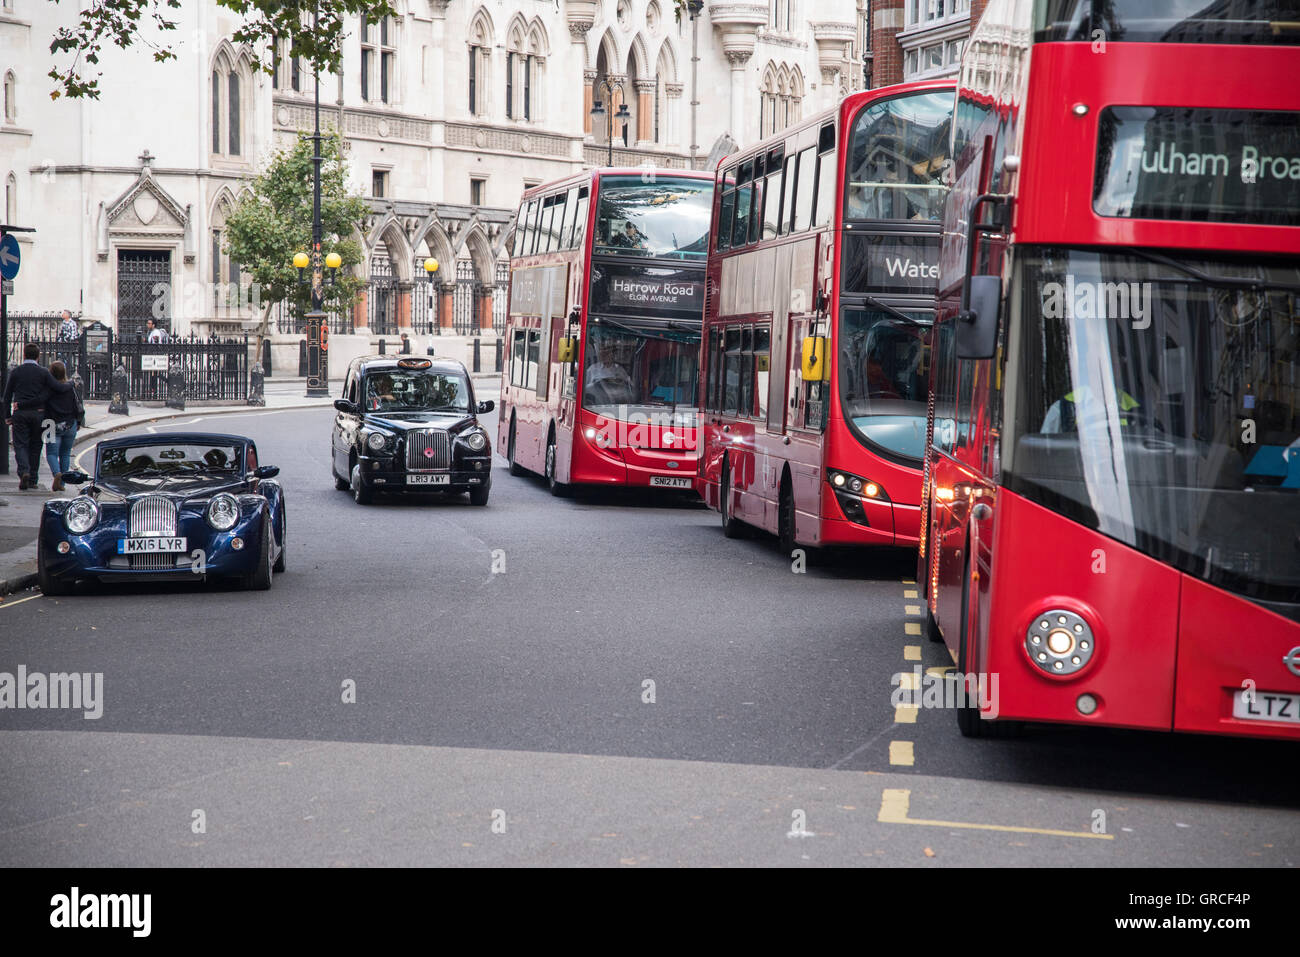 London Red Double Decker Buses Black Cab Taxis And Morgan Sports